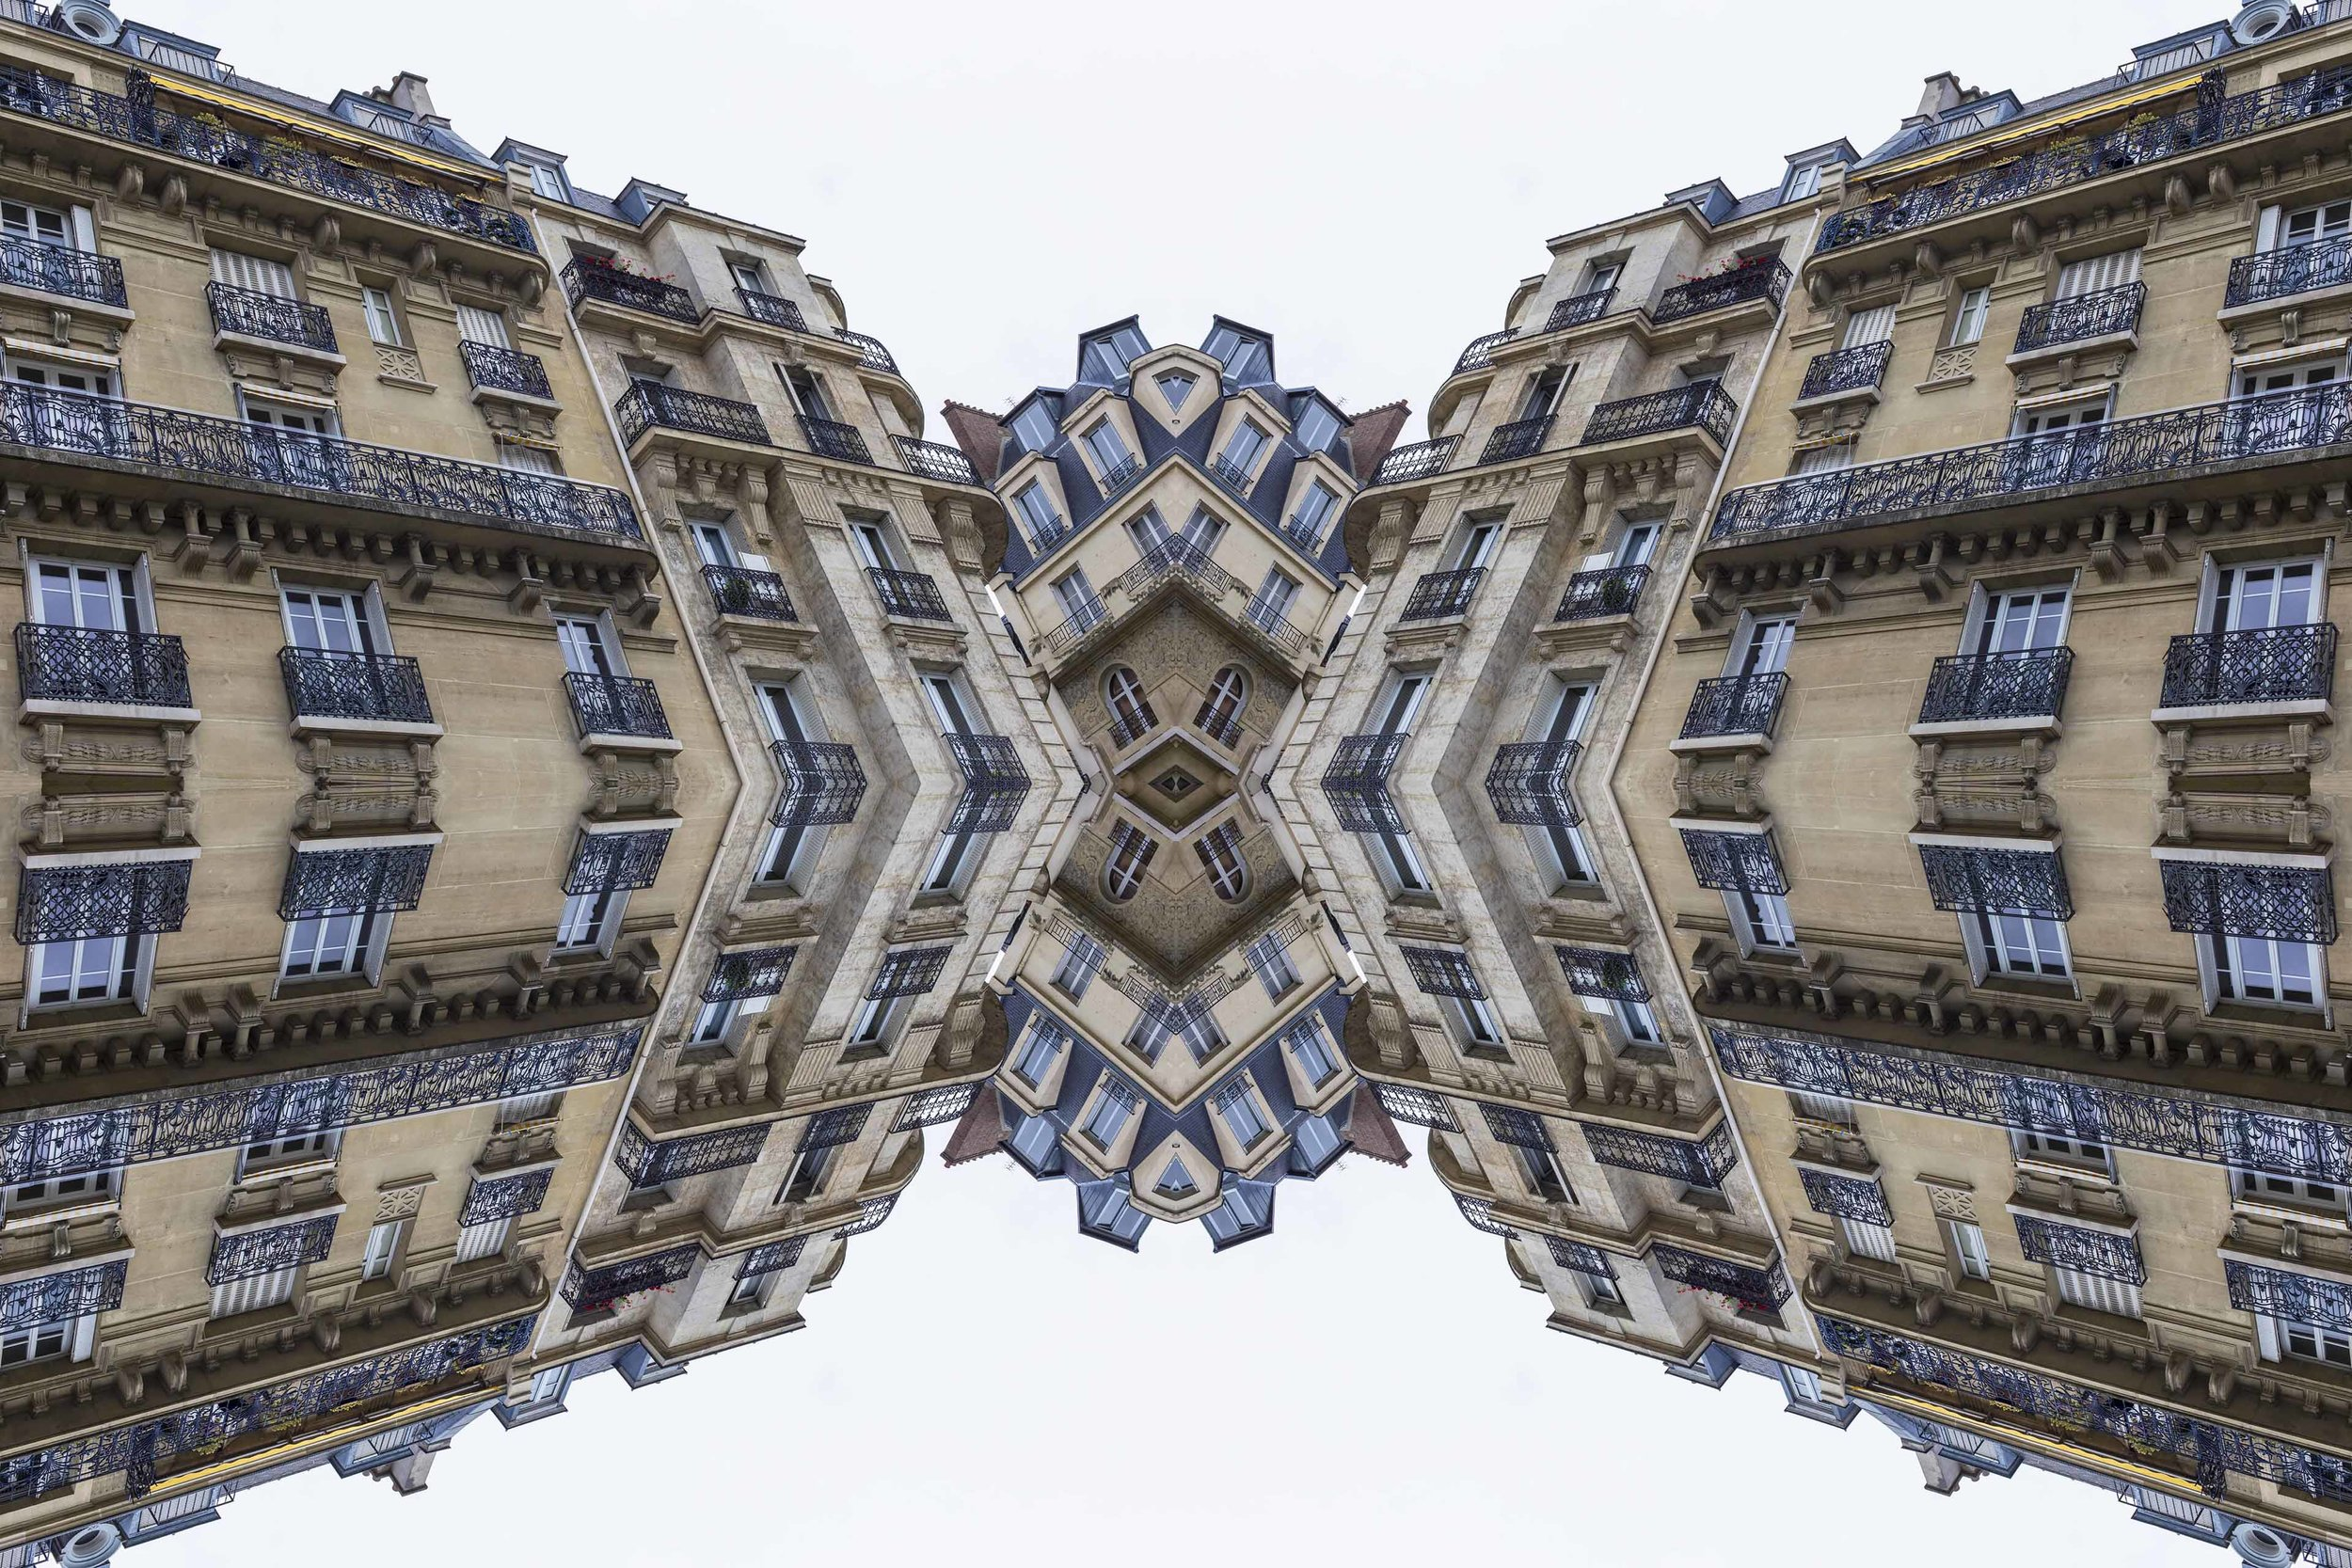 Paris 2962the-multiverse-AmirBECH.jpg